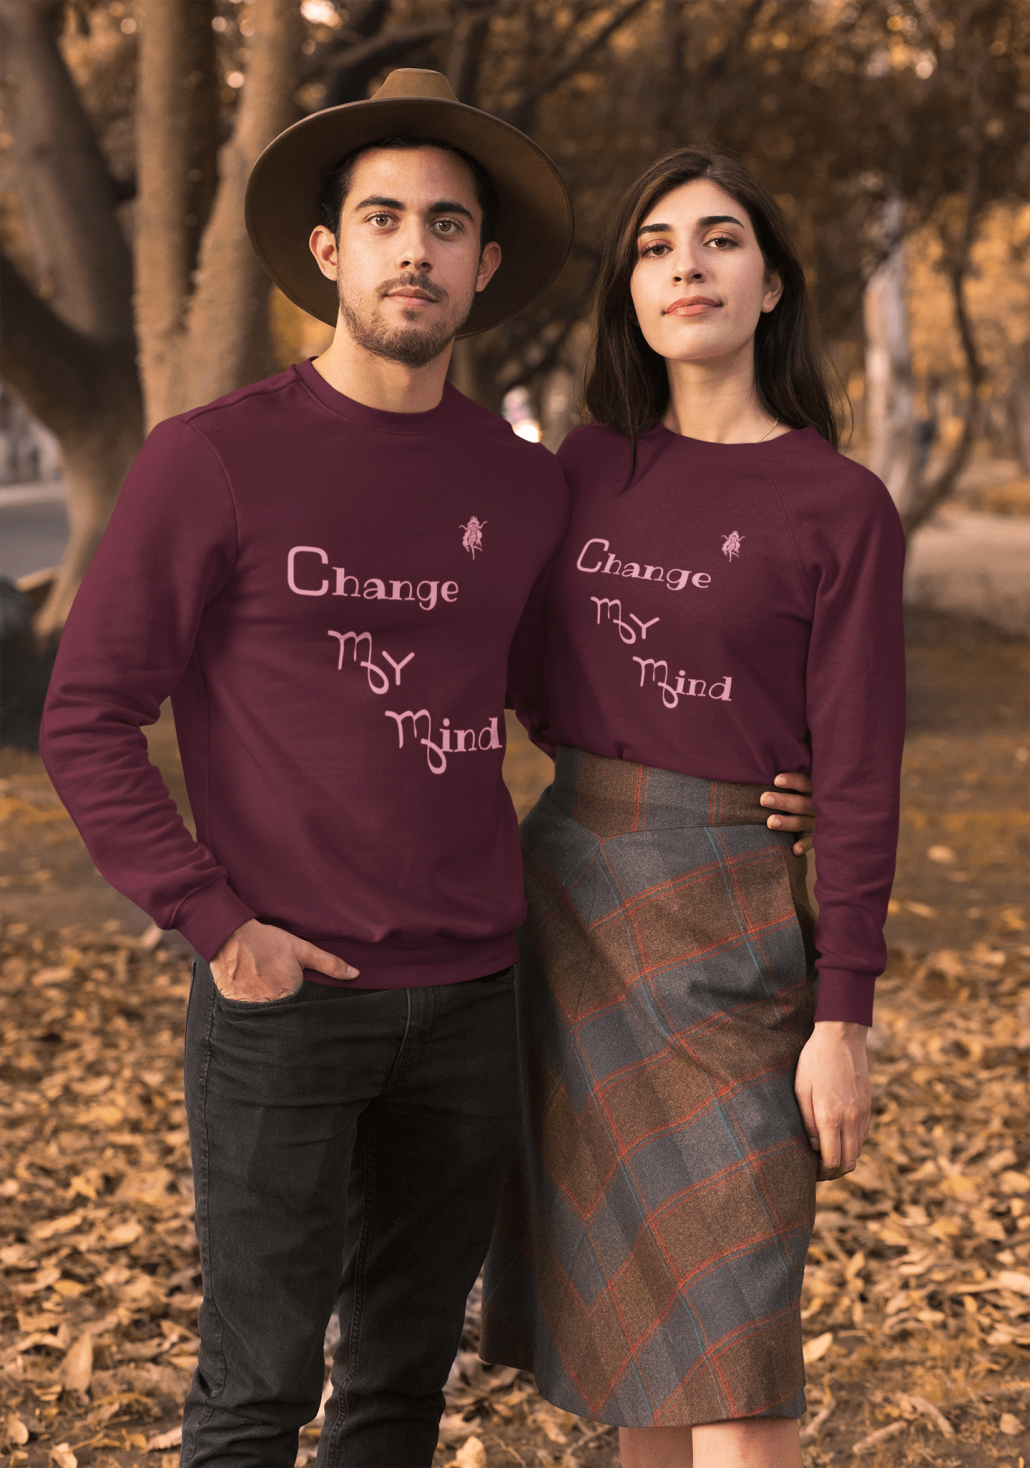 Matching virgo sweaters with guy and girl